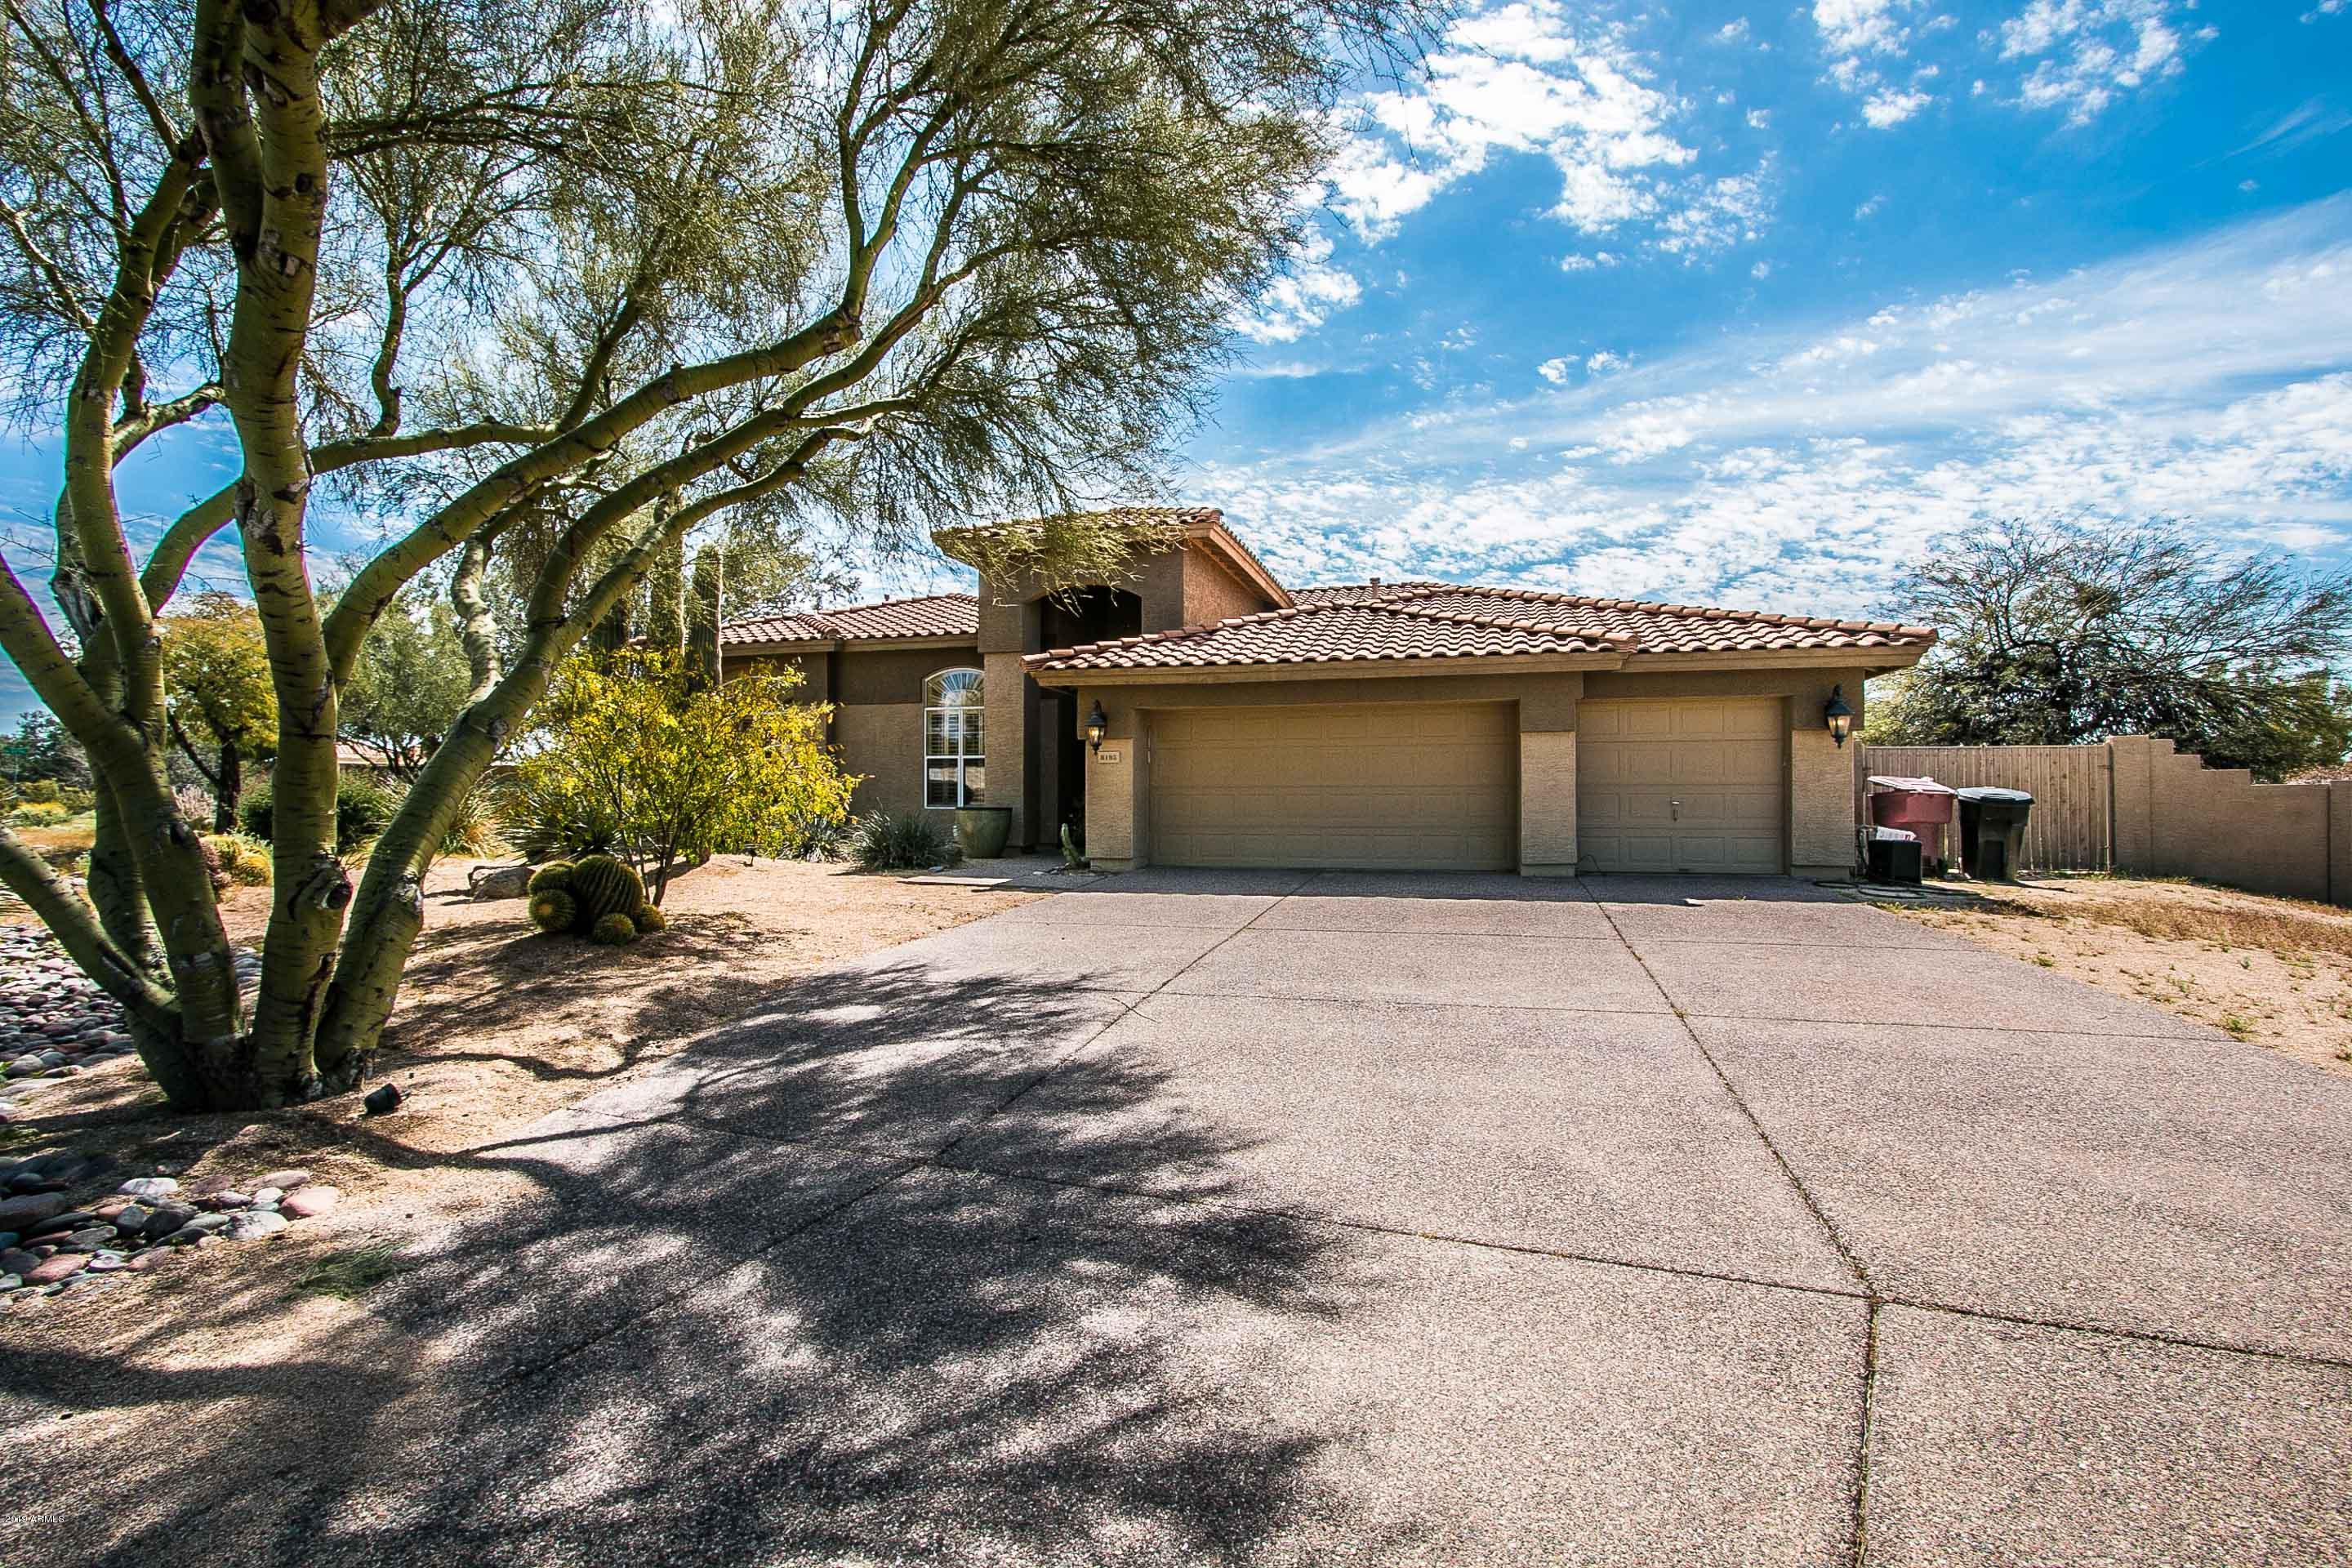 Fabulous driveway with ample parking